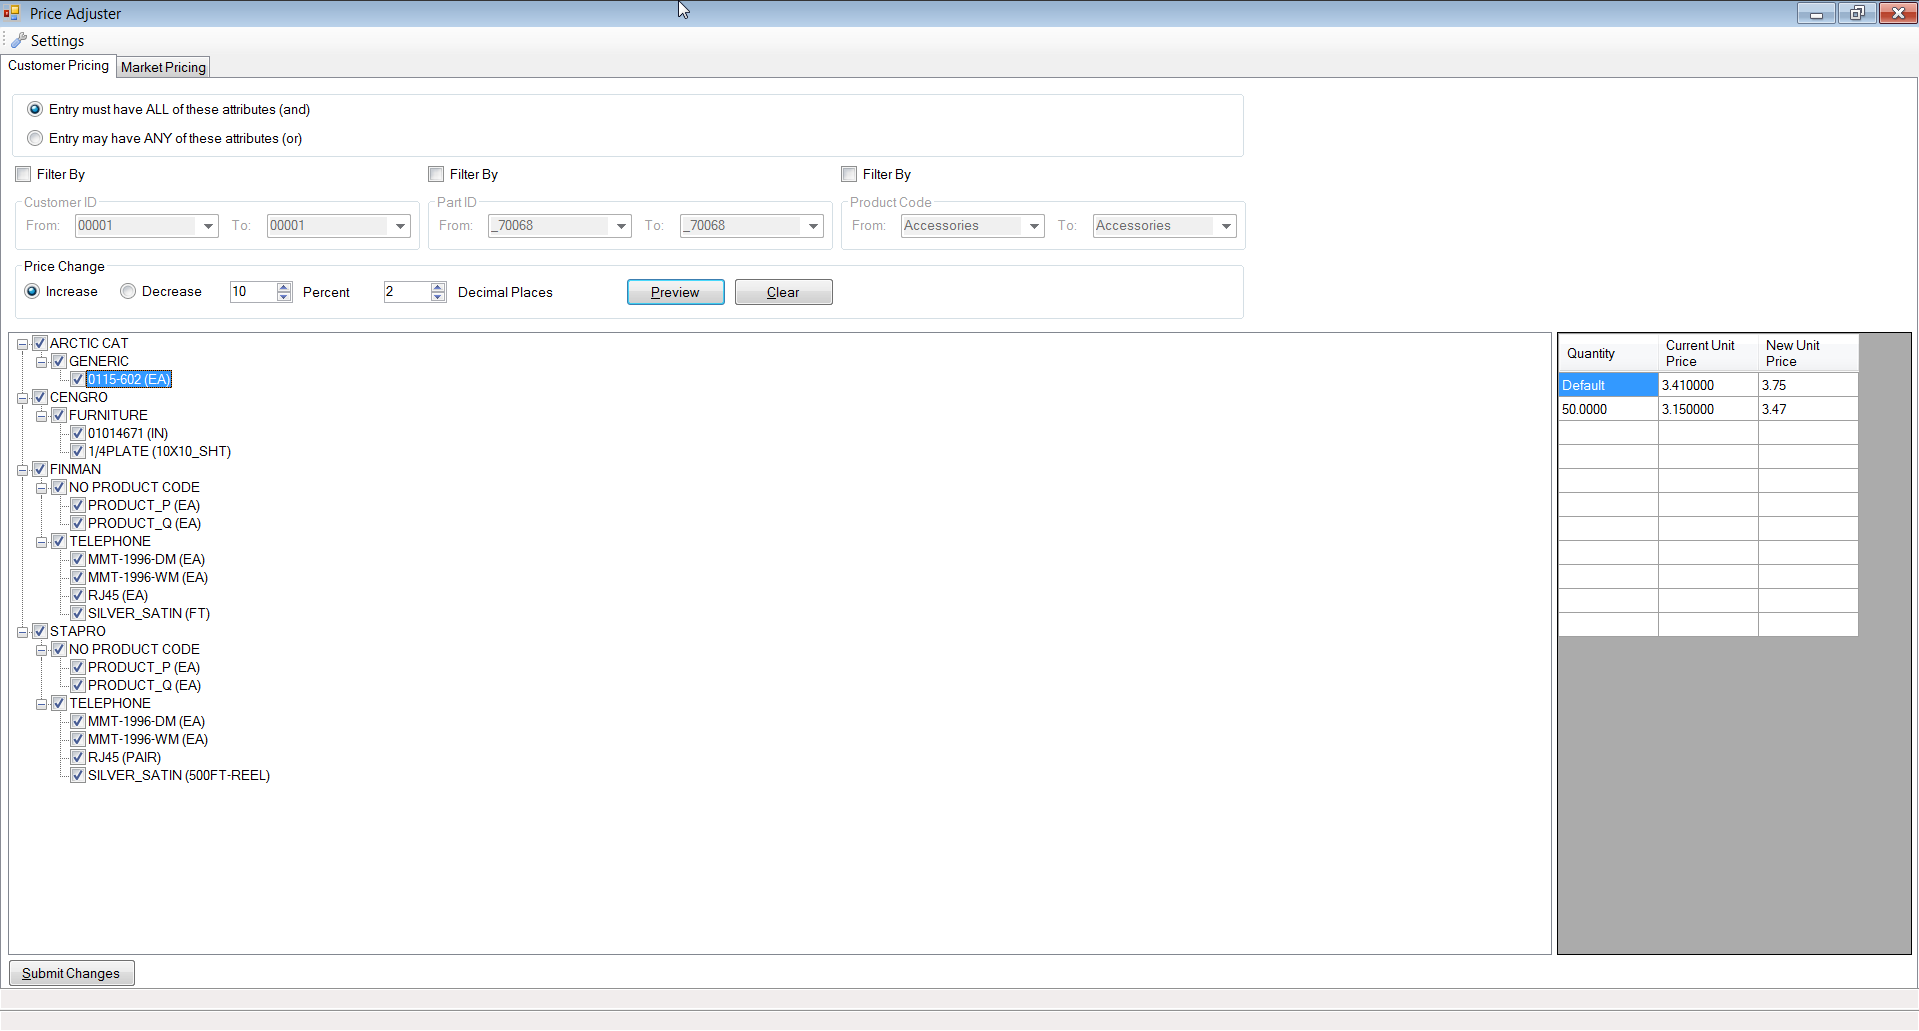 Price Adjuster by SaberLogic for Infor VISUAL ERP - Screenshot 5